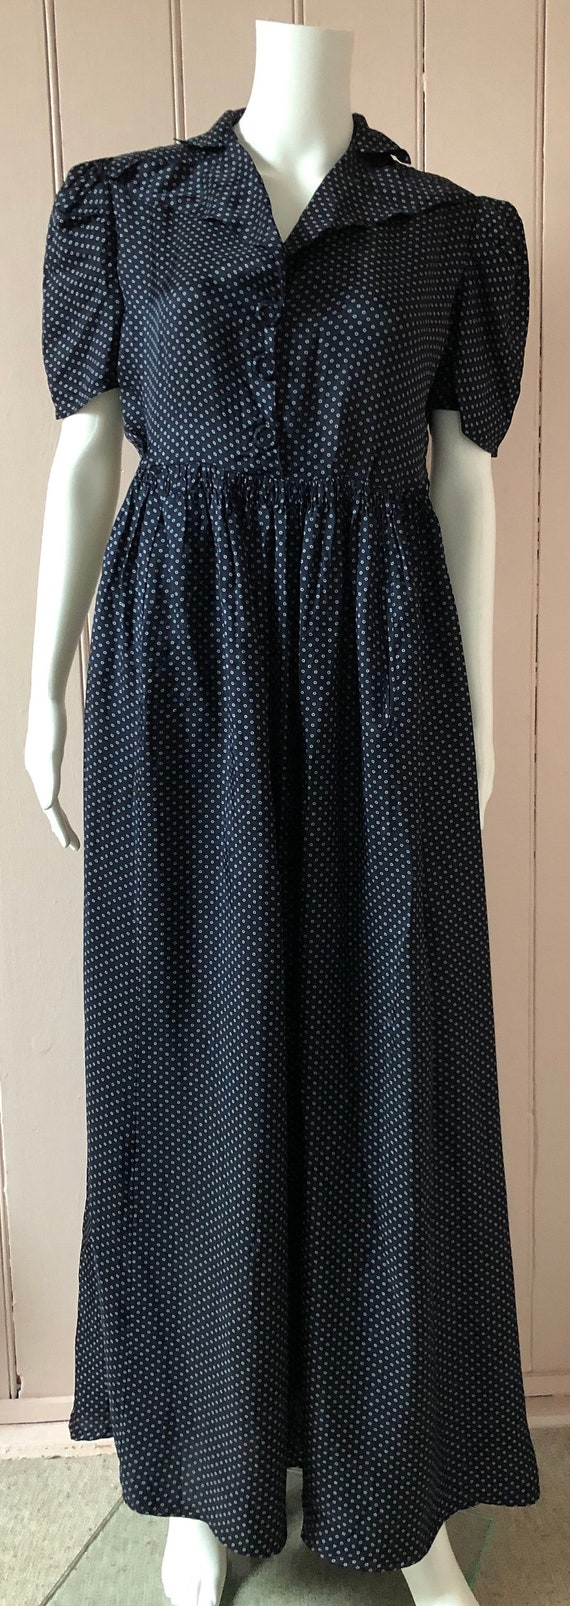 Lovely 1940's Rayon Dress - image 2